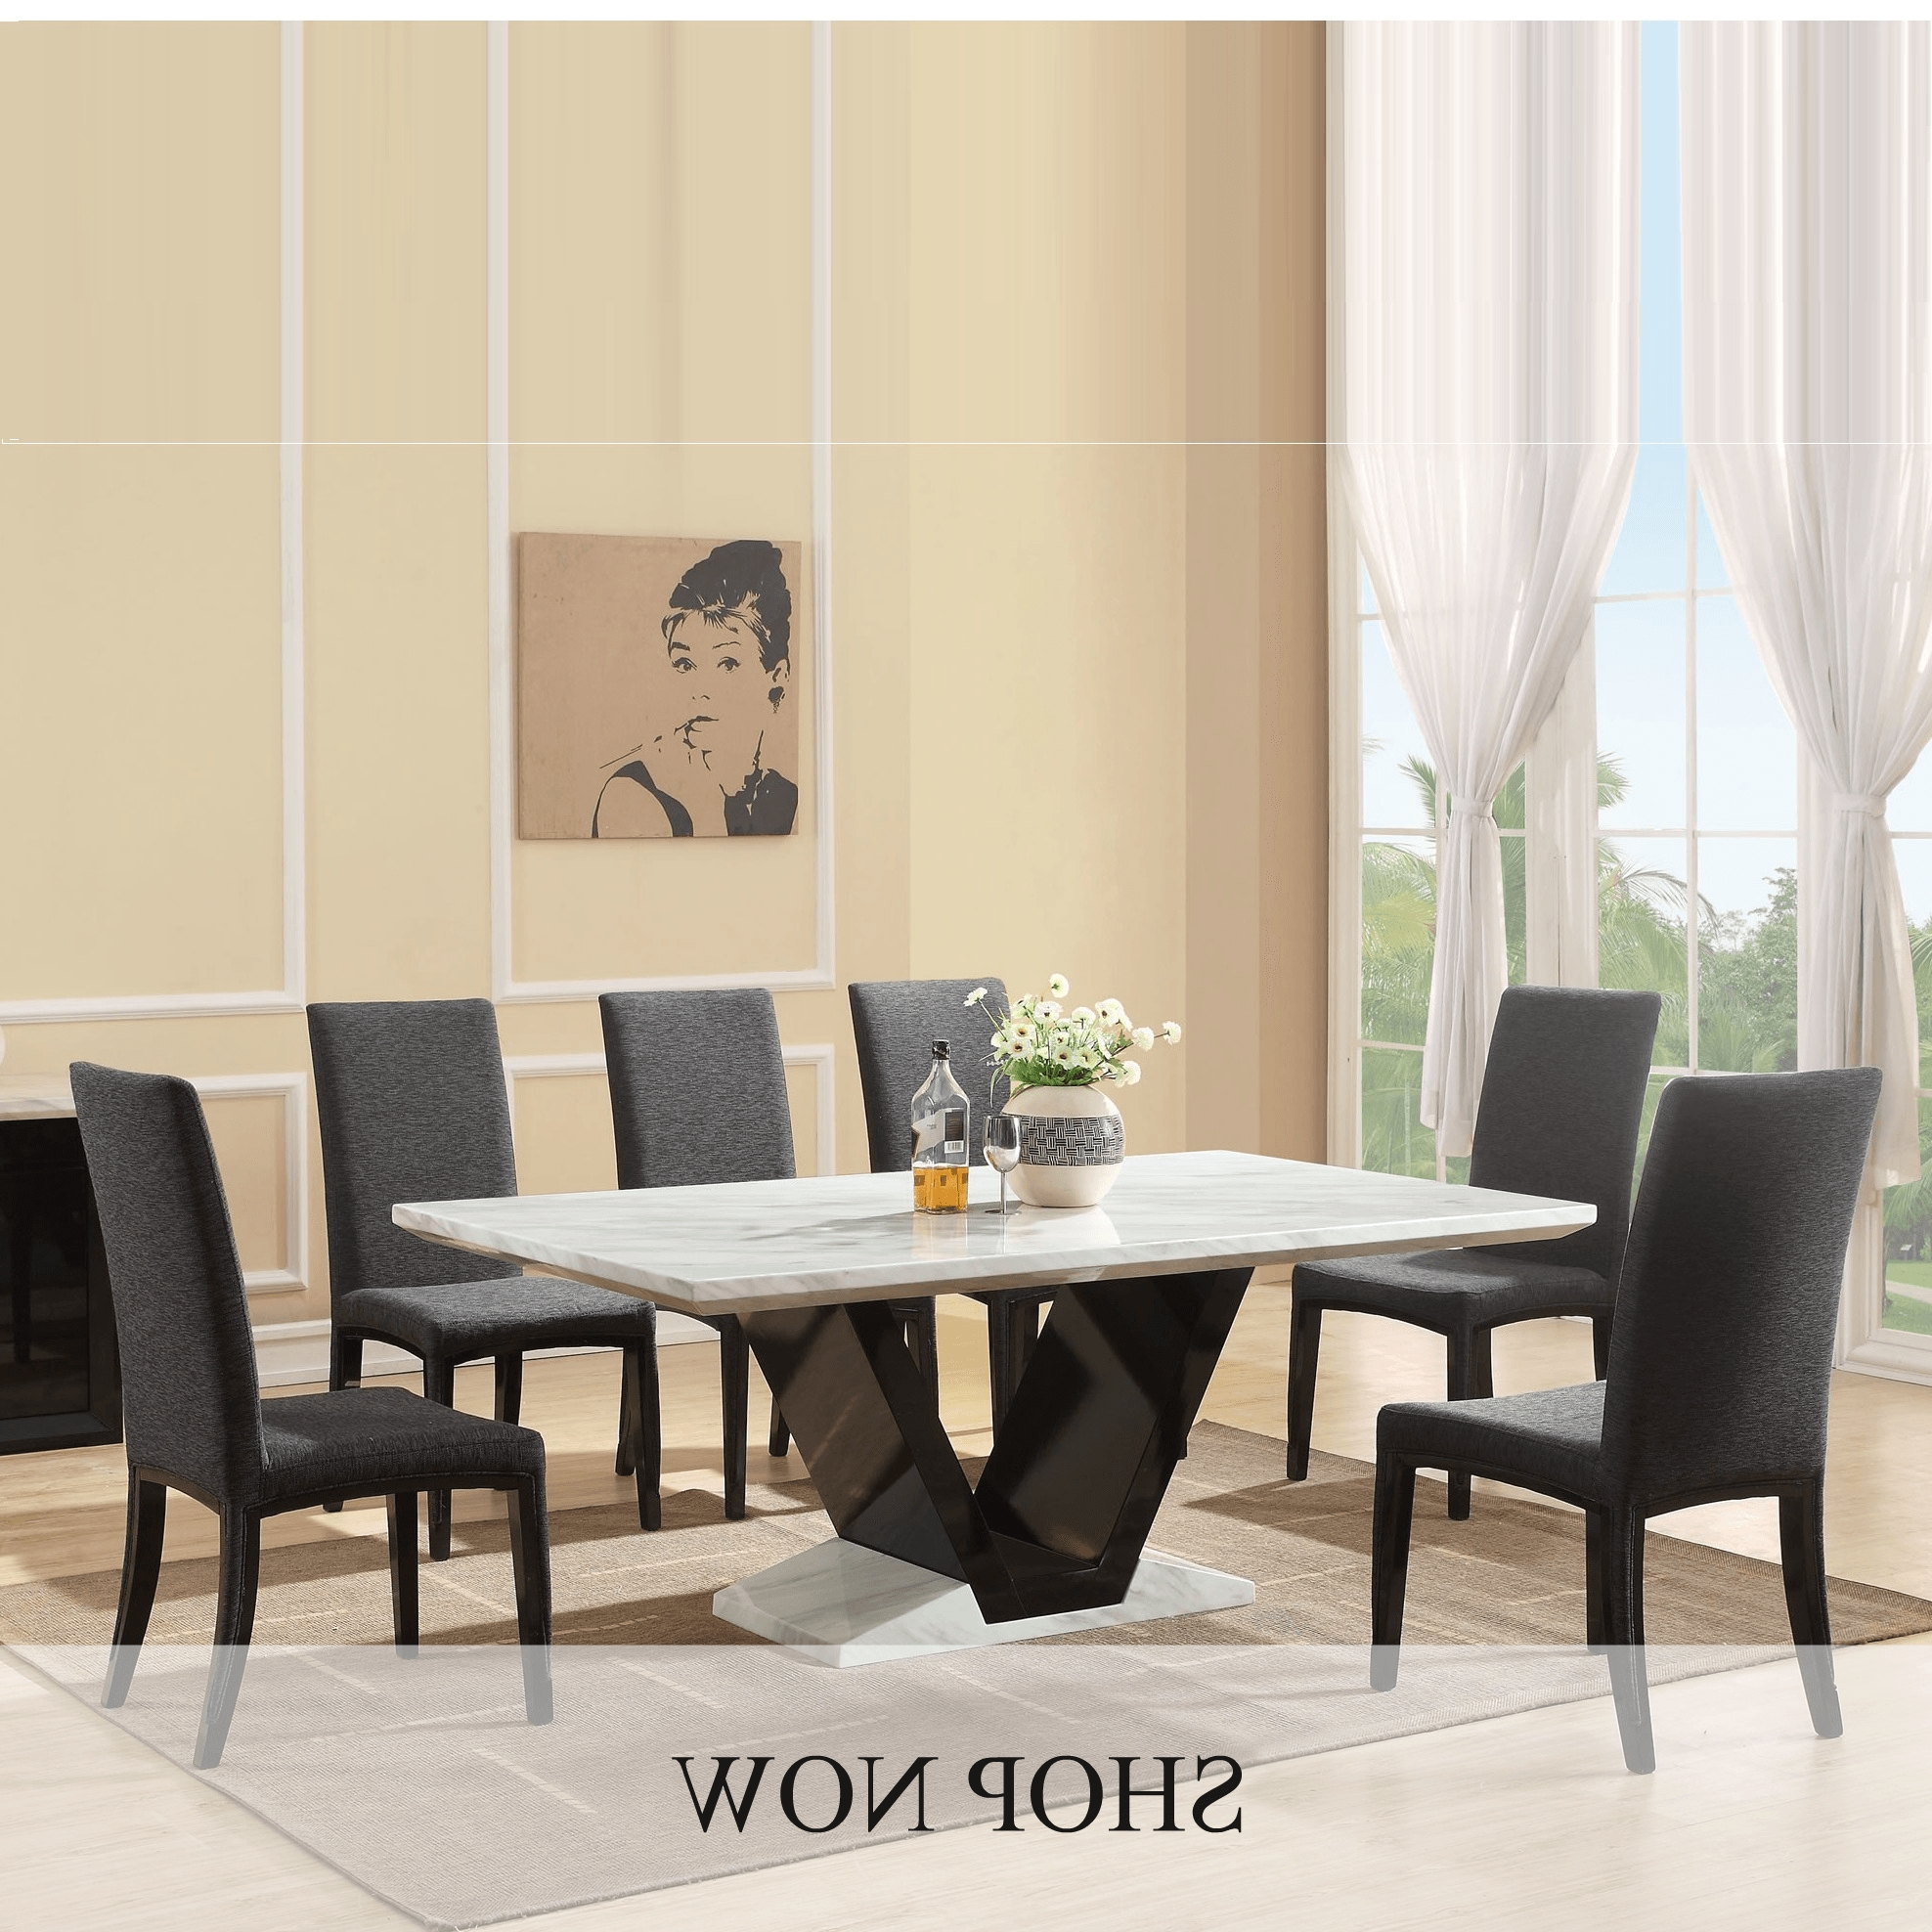 2018 Marble Dining Table White – Marble Dining Table Creative Art Ideas Throughout Marble Dining Tables Sets (View 2 of 25)